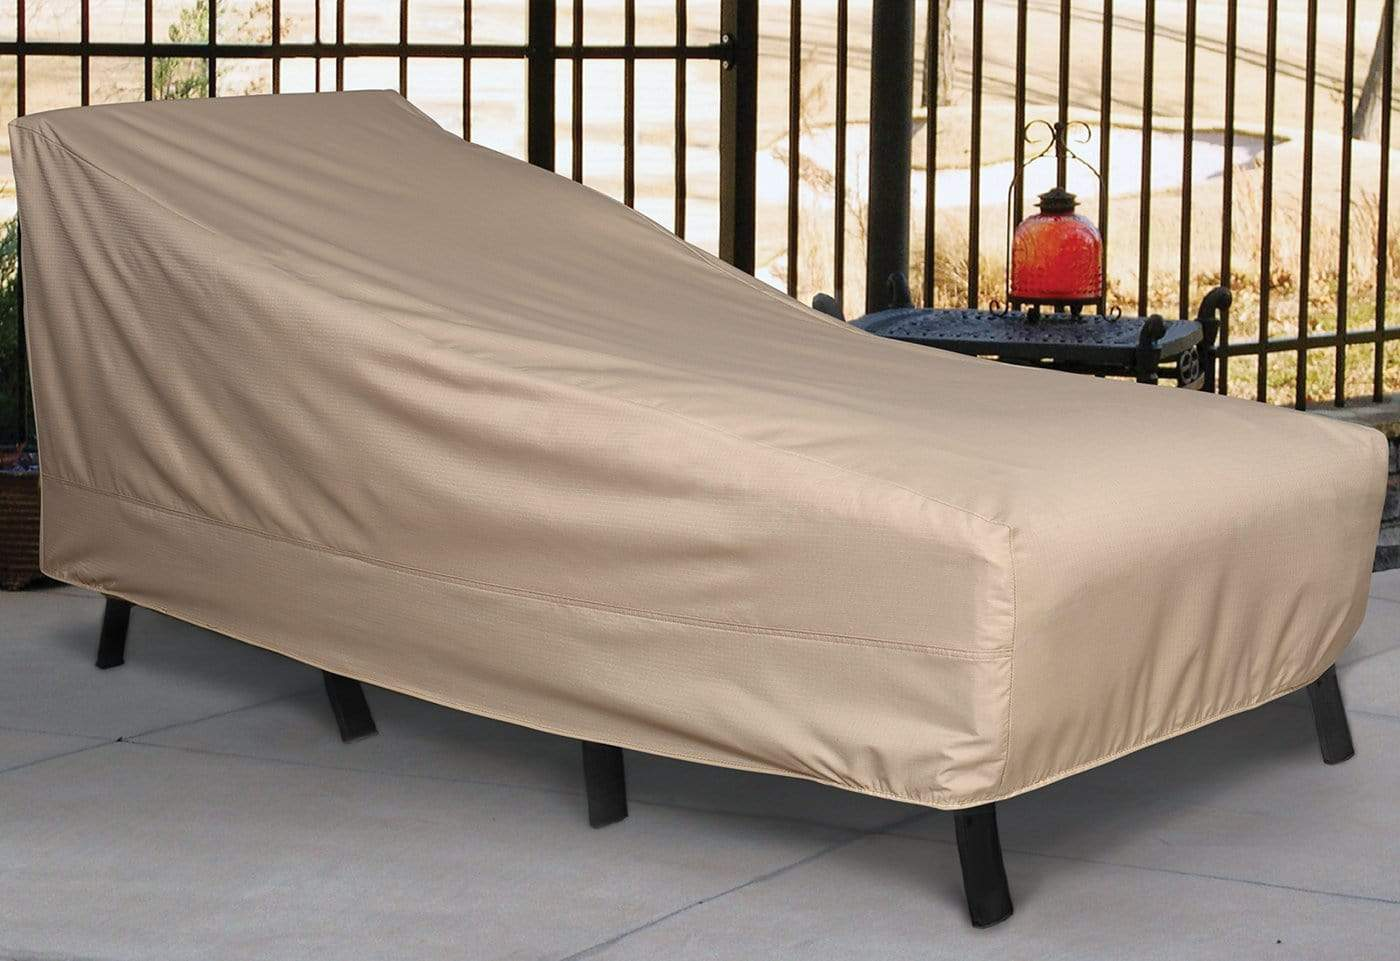 Patio Armor Chaise Lounge Outdoor Furniture Cover - Taupe